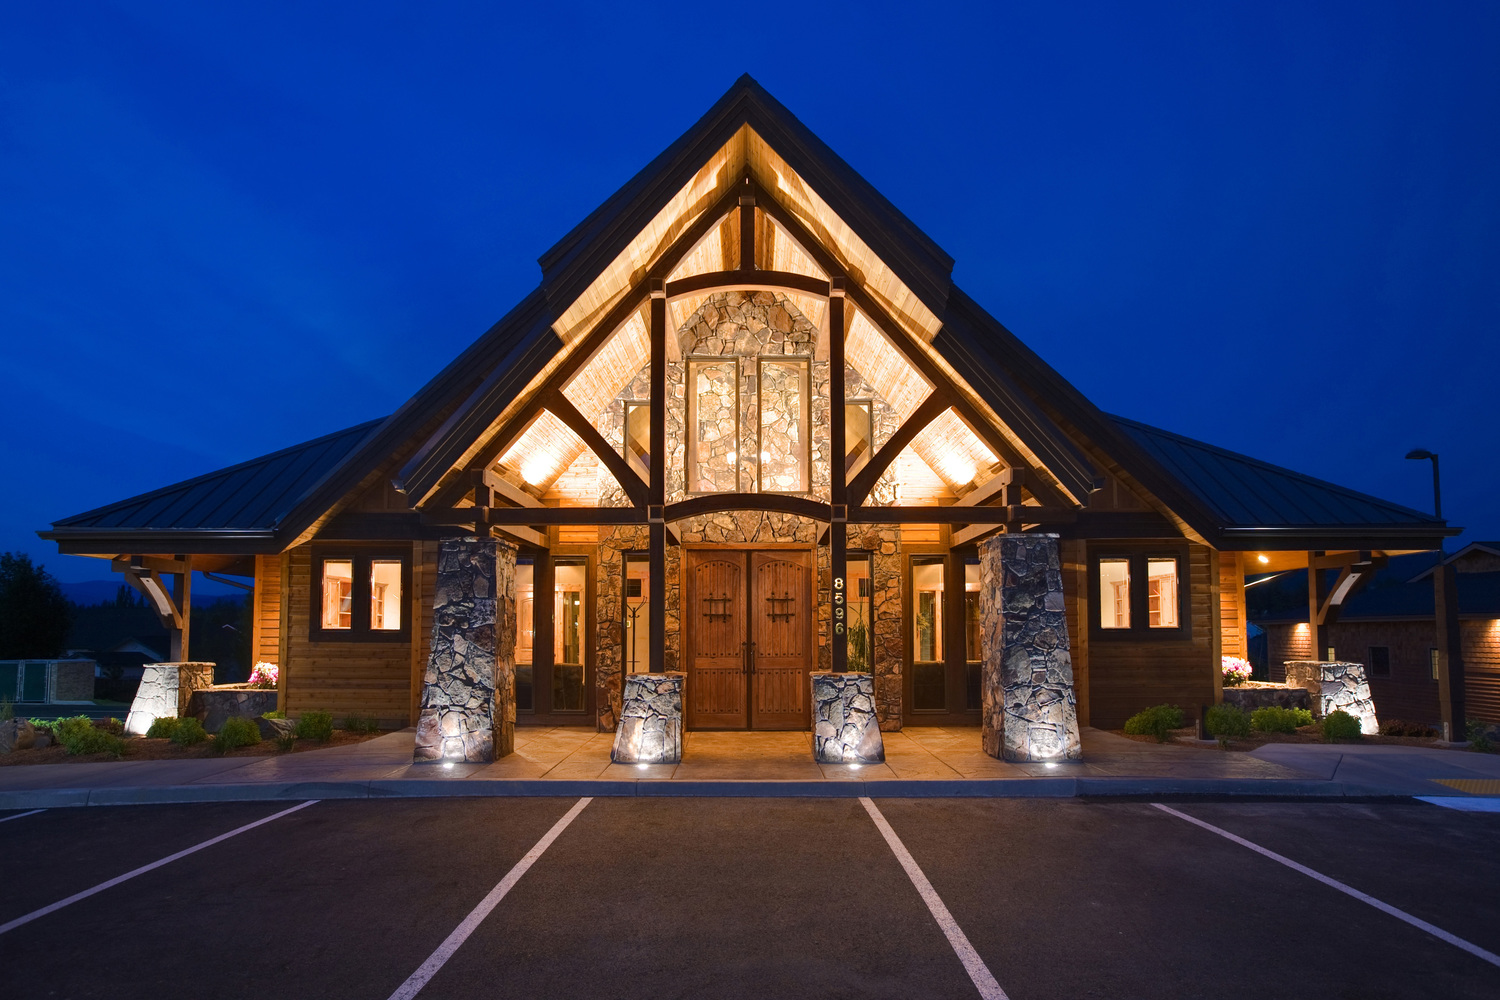 Crandall Law Group Office Building Night | Crandall Law Group | Hayden, Idaho